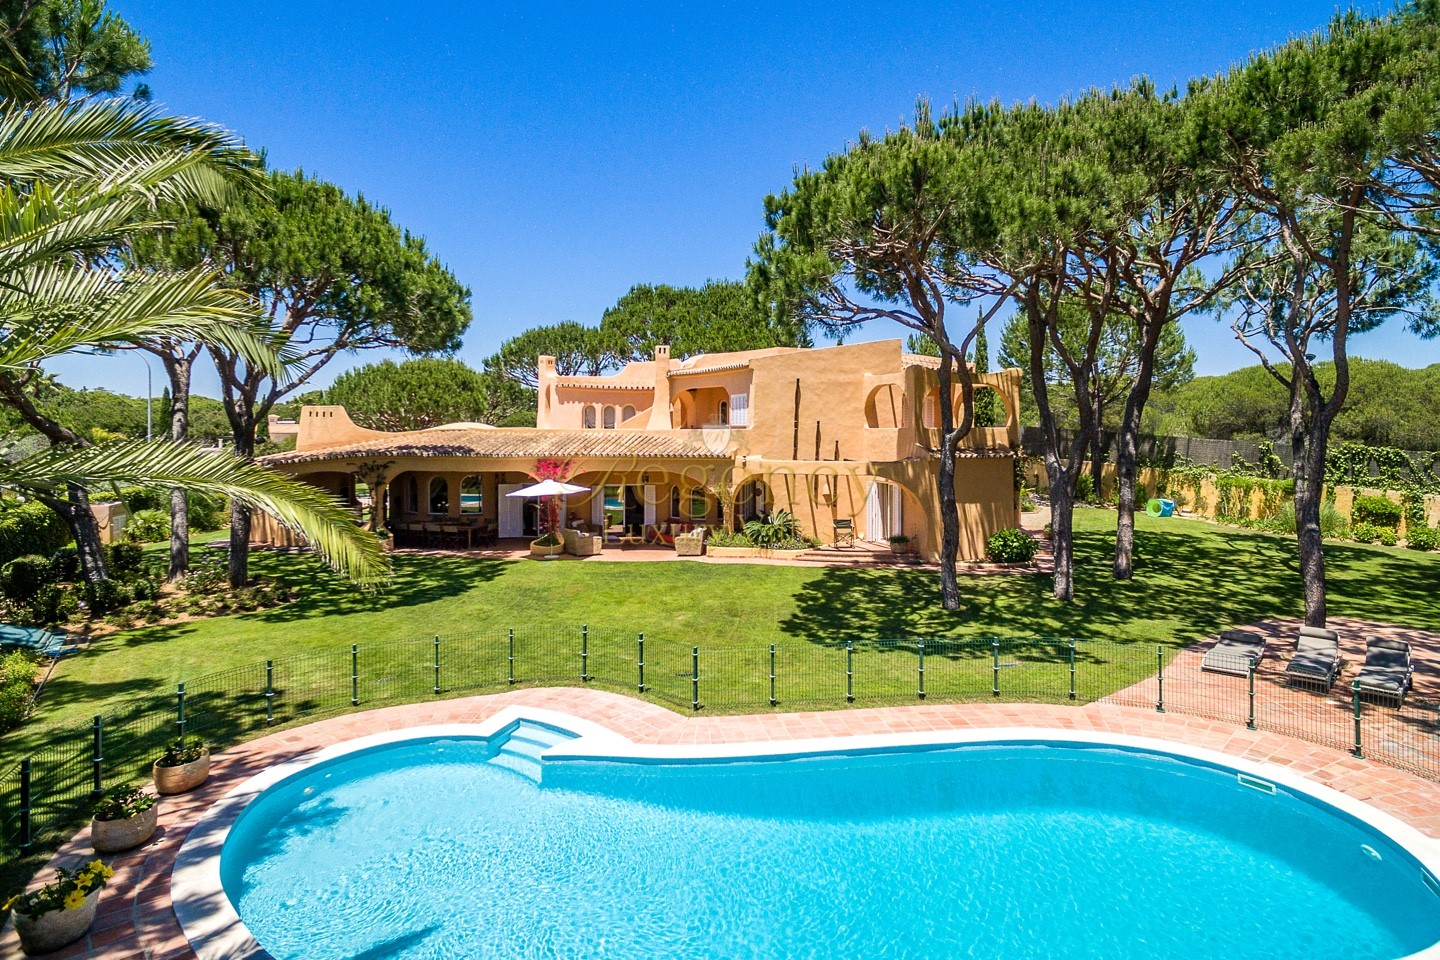 Modern Luxurious Property With Pool To Rent In Vilamoura Algarve